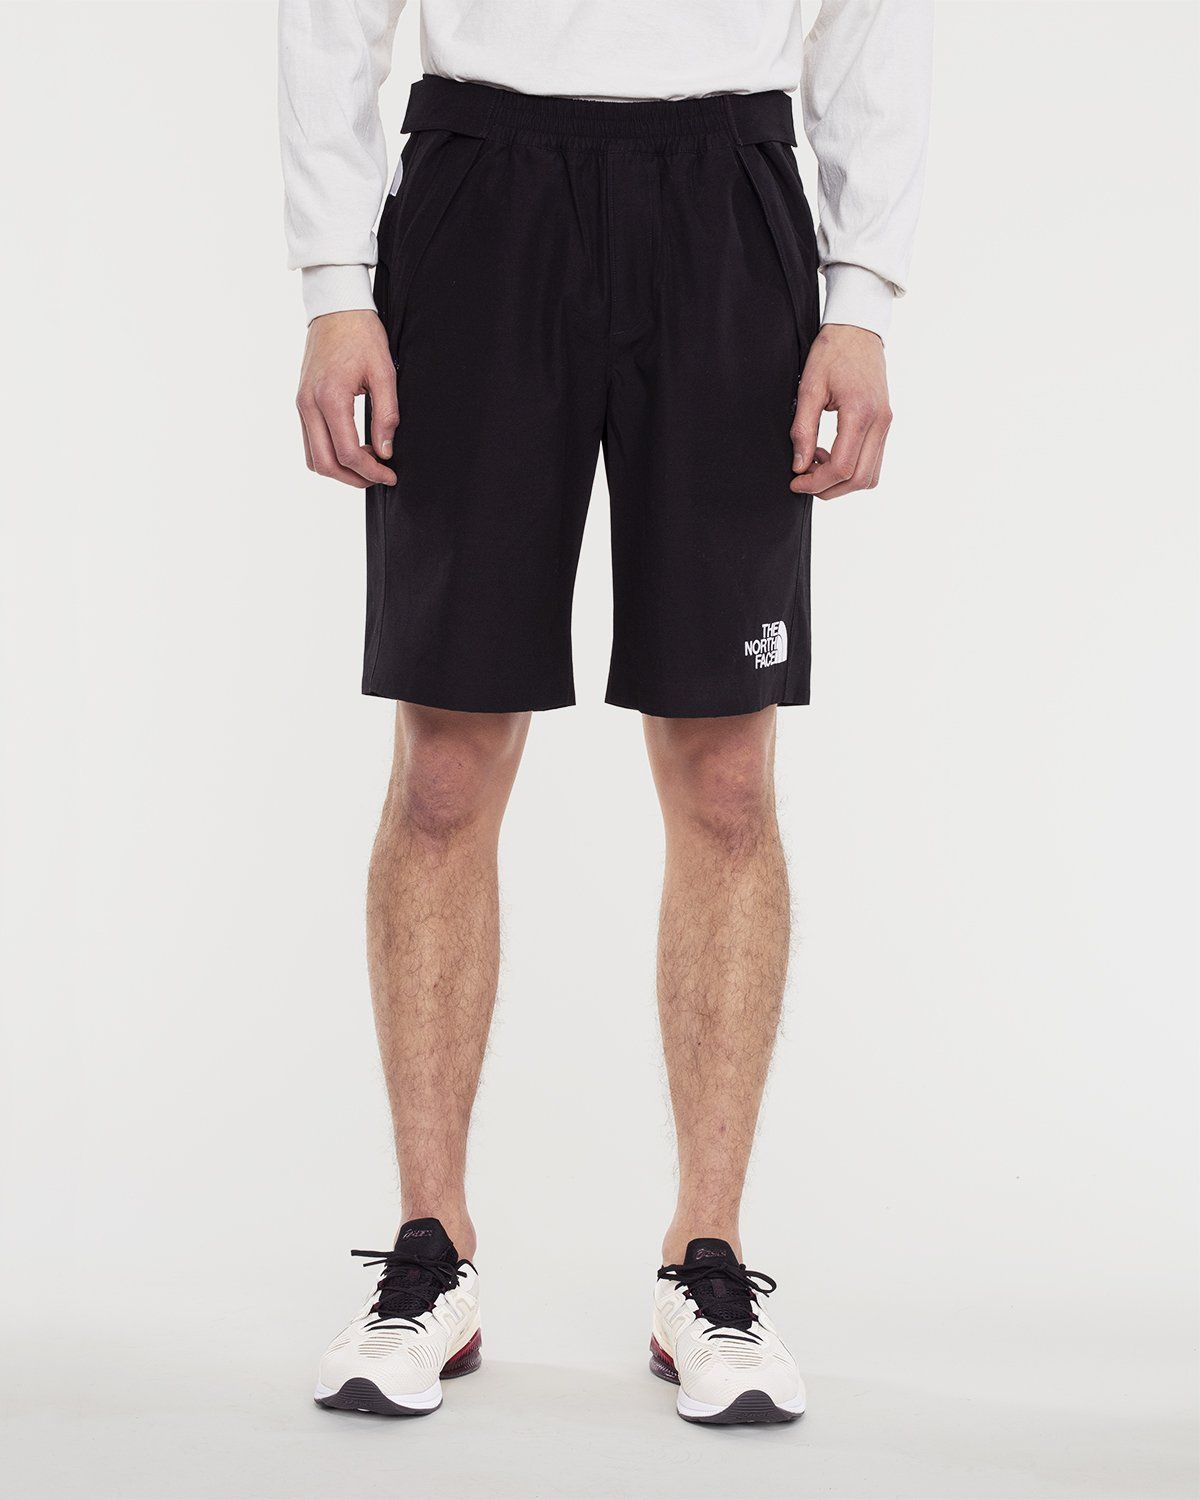 The North Face Black Series - Spectra® Shorts Black - Image 2